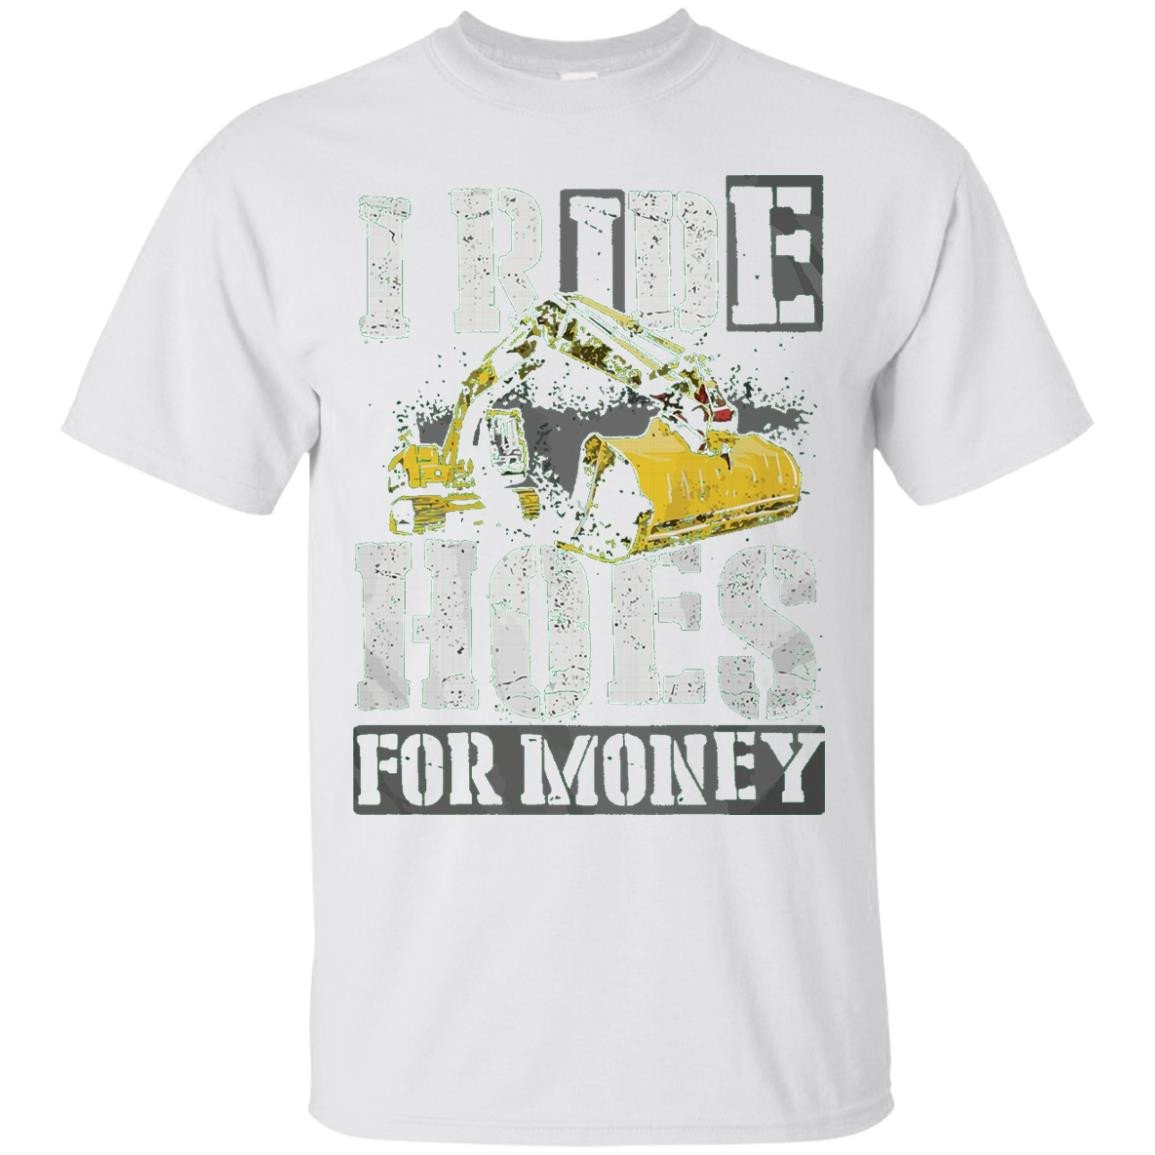 I Ride Hoes For Money t-shirt - T-Shirt